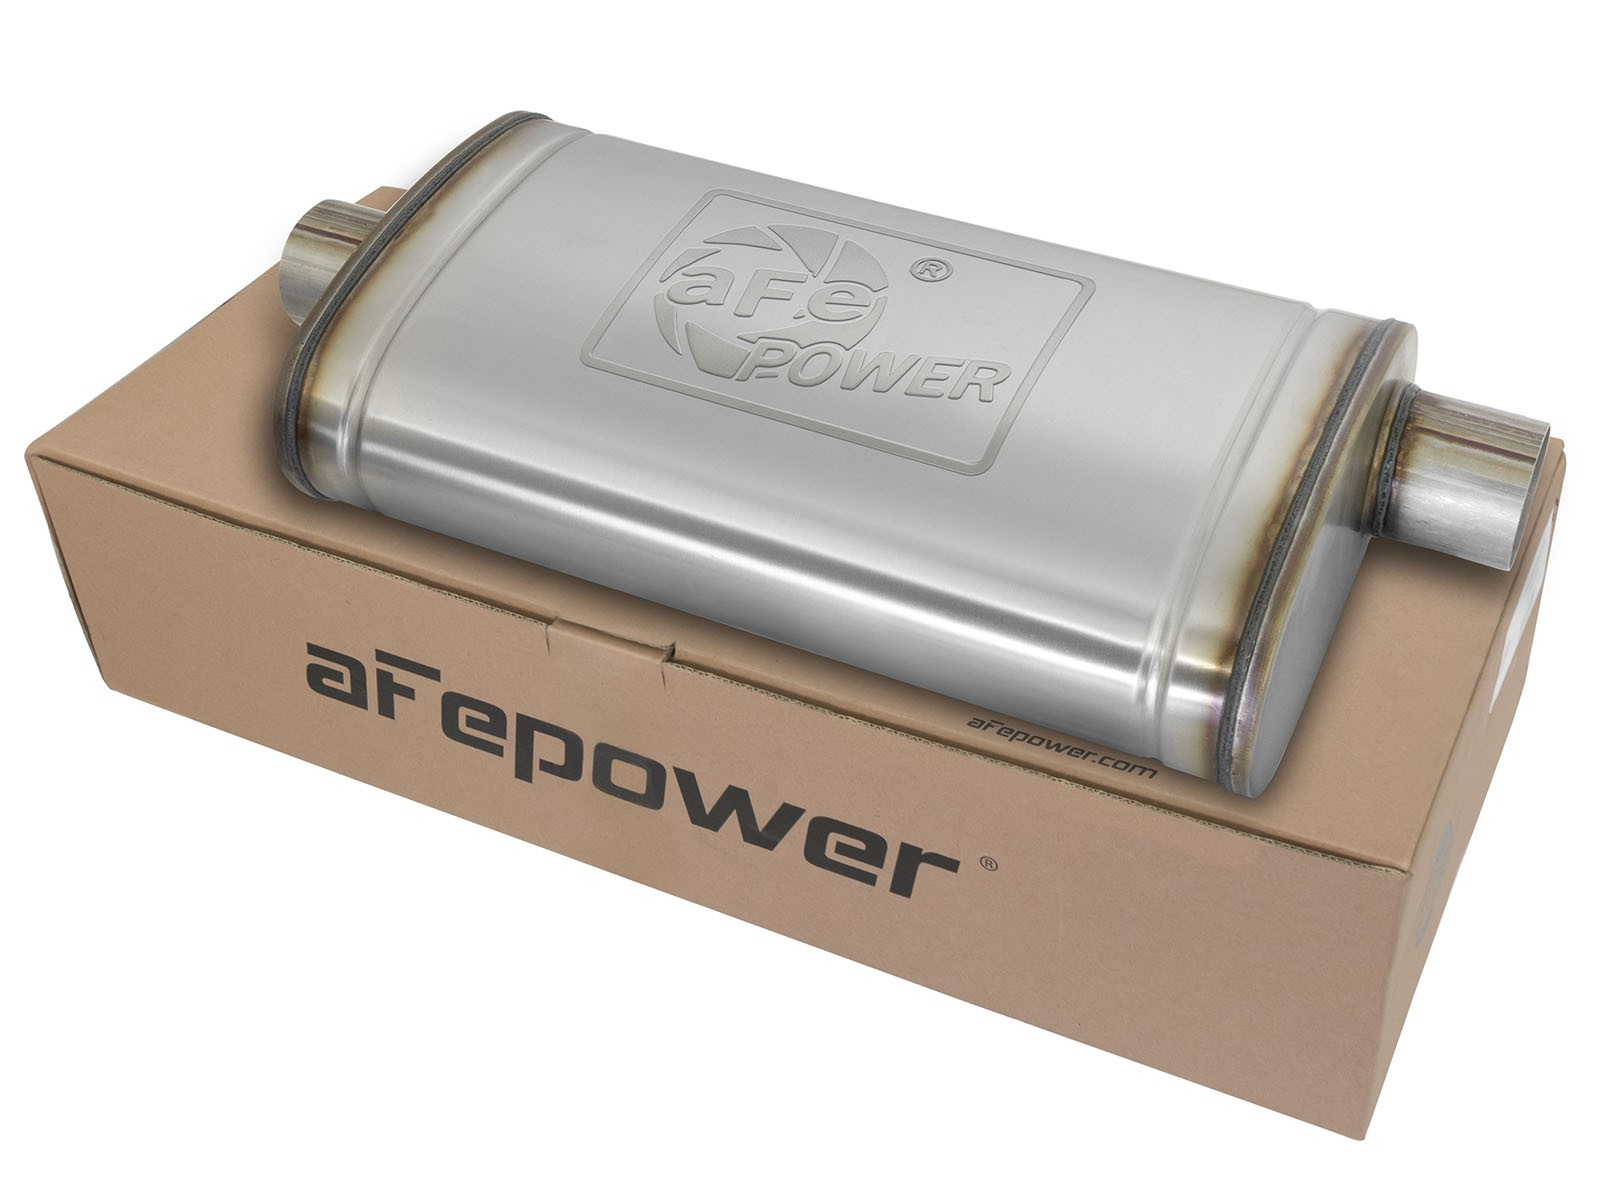 "aFe POWER 49M00016 MACH Force-Xp 3"" to 3"" 409 Stainless Steel Muffler"